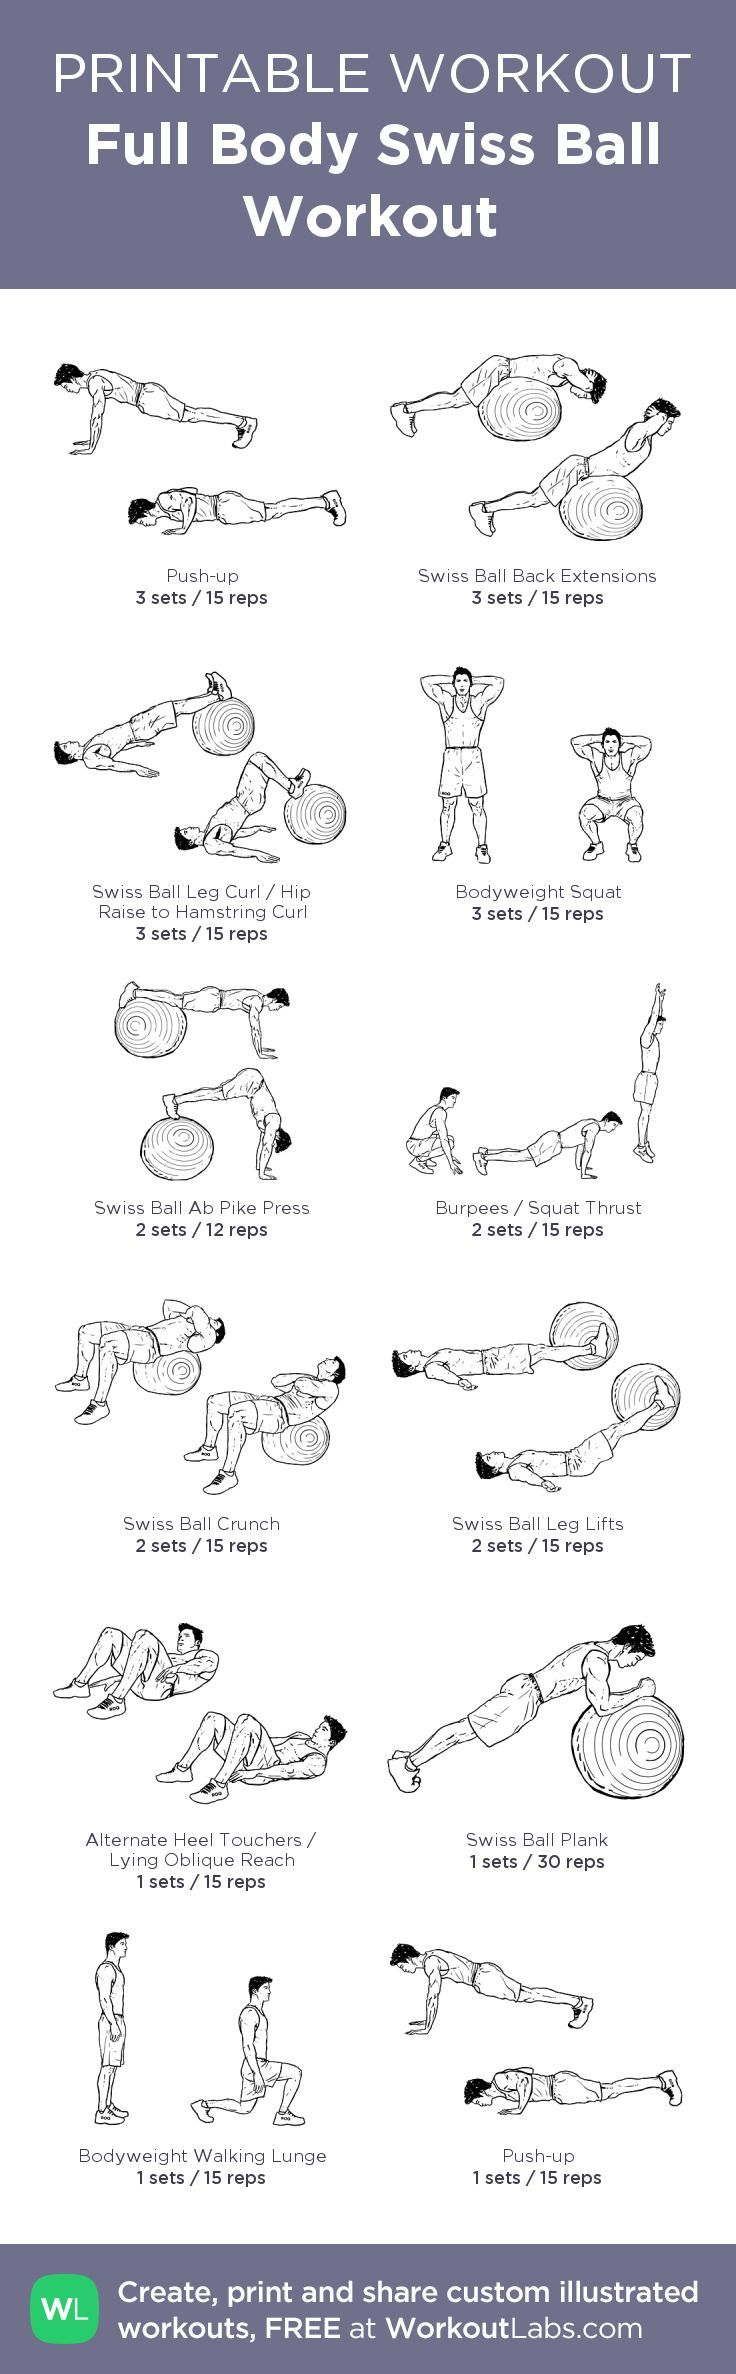 Full Body Swiss Ball Workout · WorkoutLabs Fit